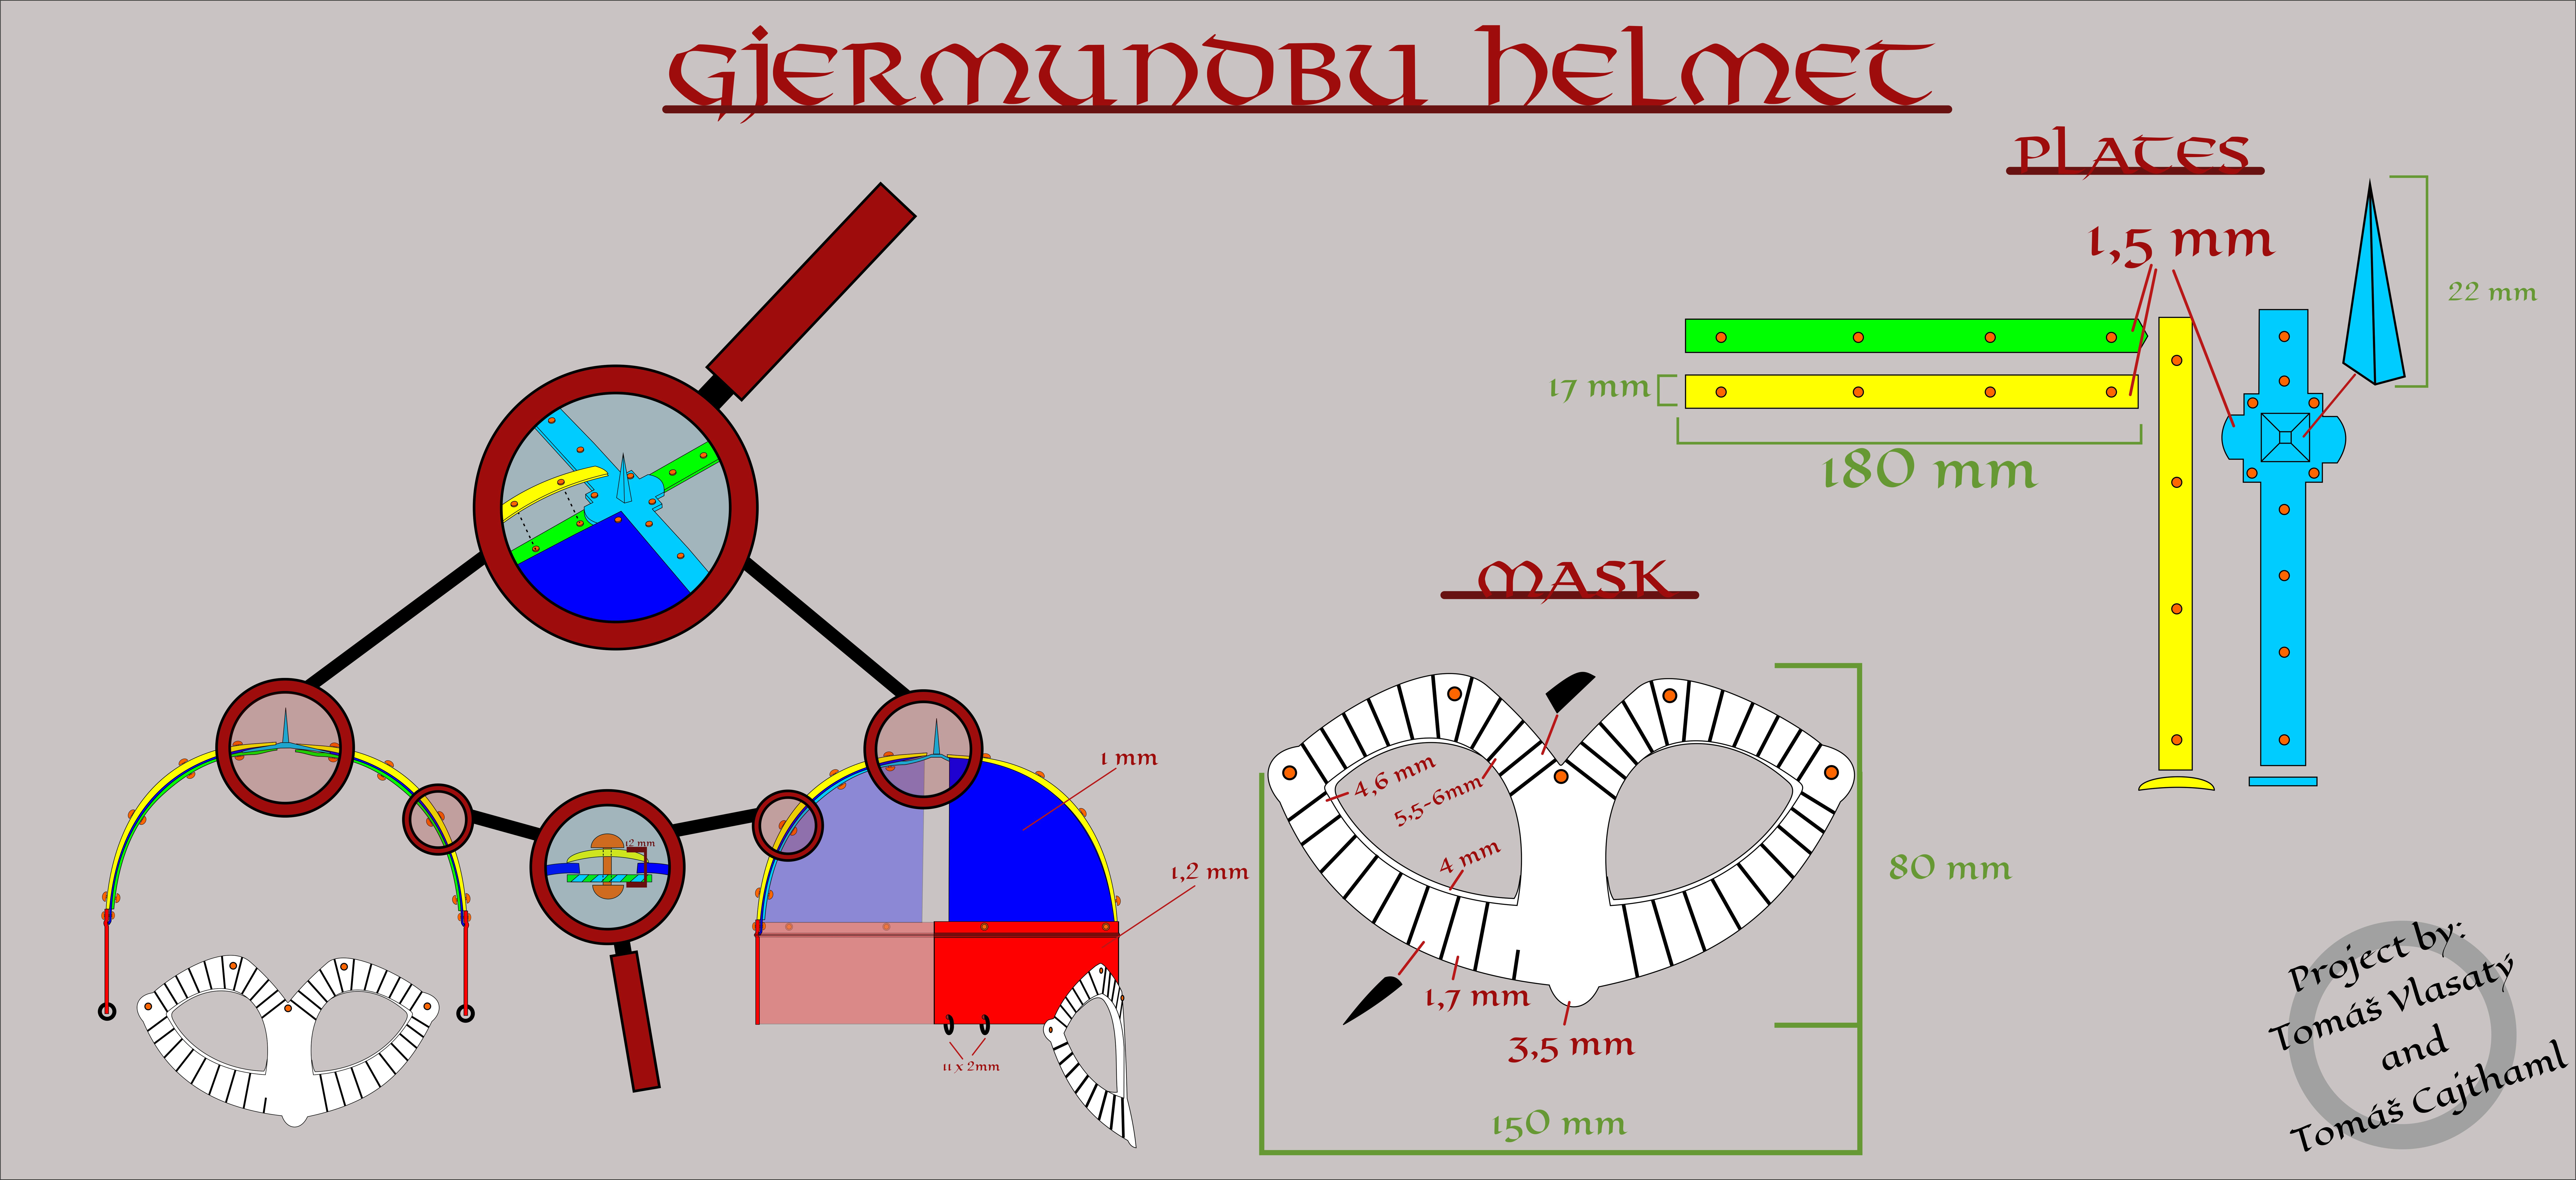 The scheme of the helmet. Made by Tomáš Vlasatý and Tomáš Cajthaml.